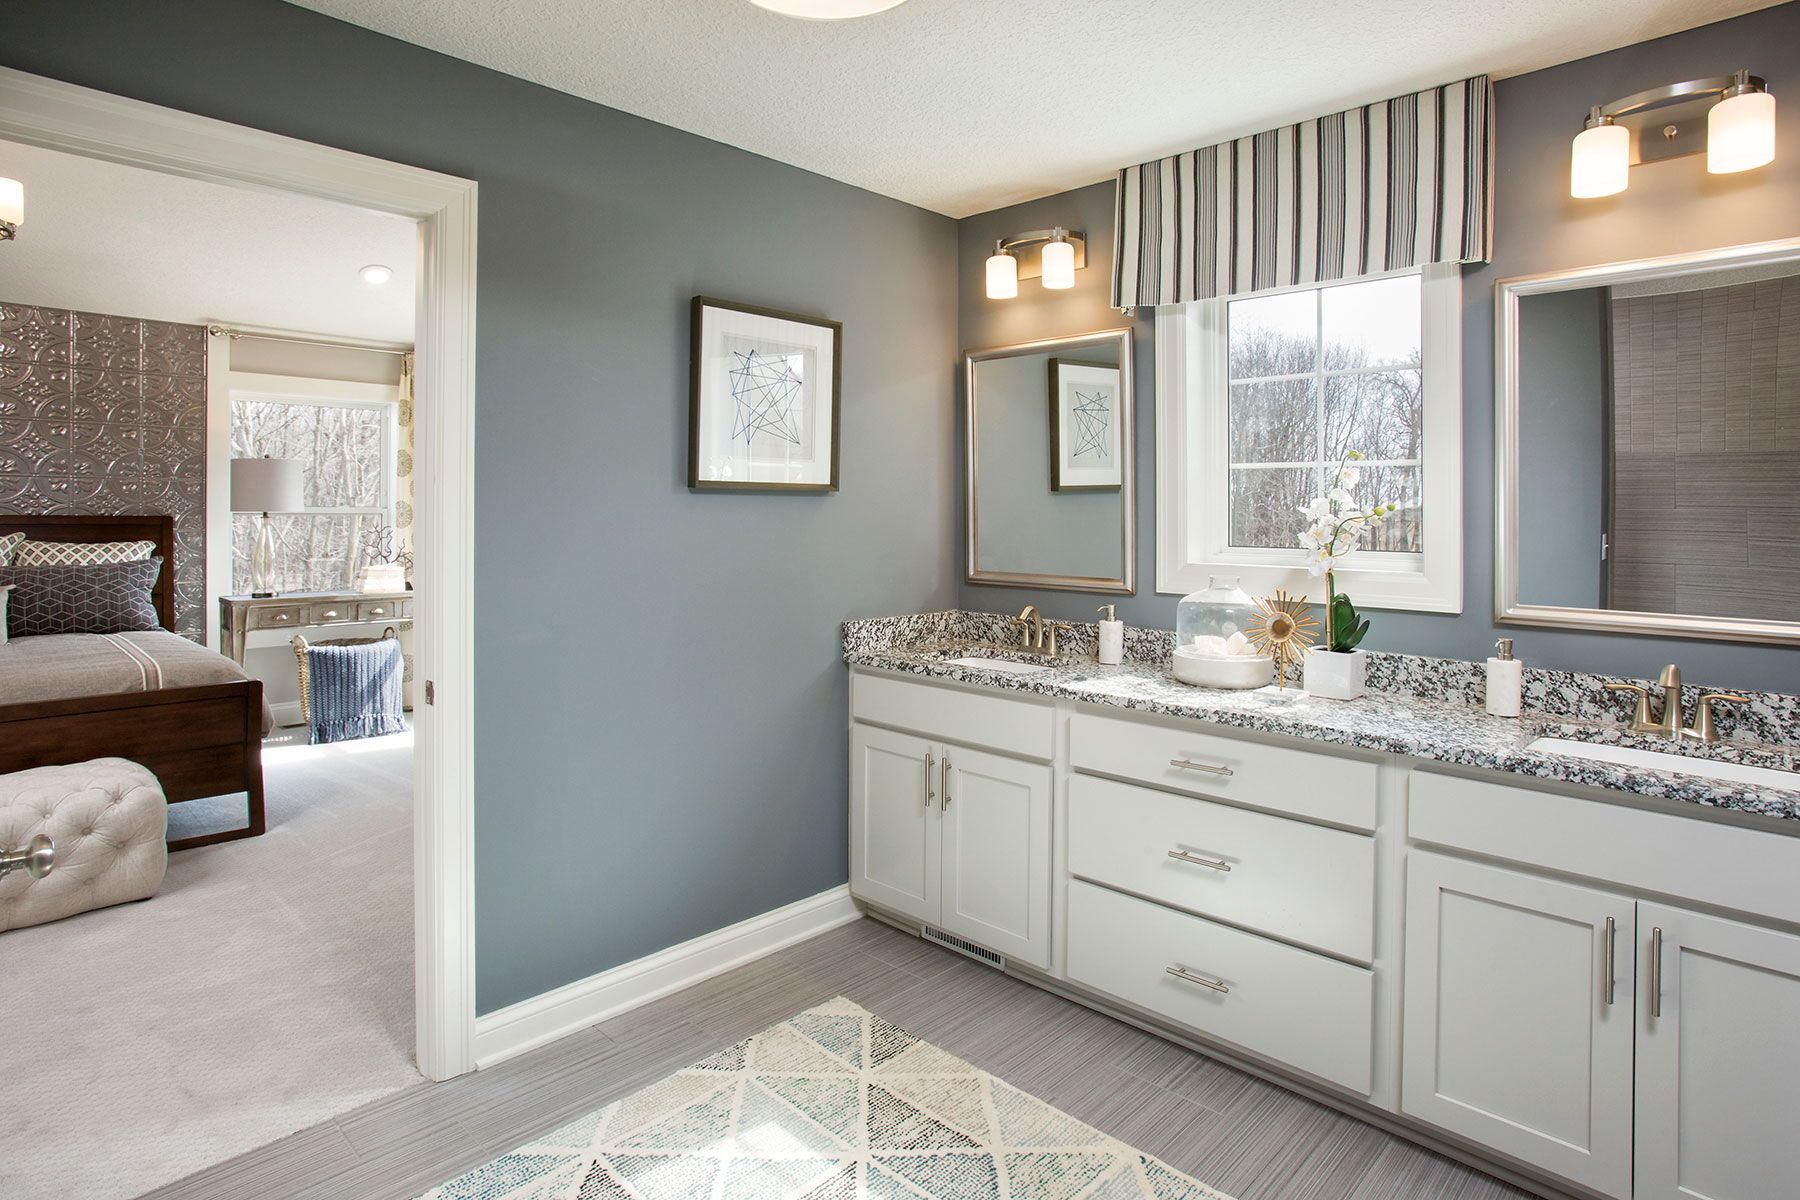 Bathroom featured in the Eastman By M/I Homes in Minneapolis-St. Paul, MN